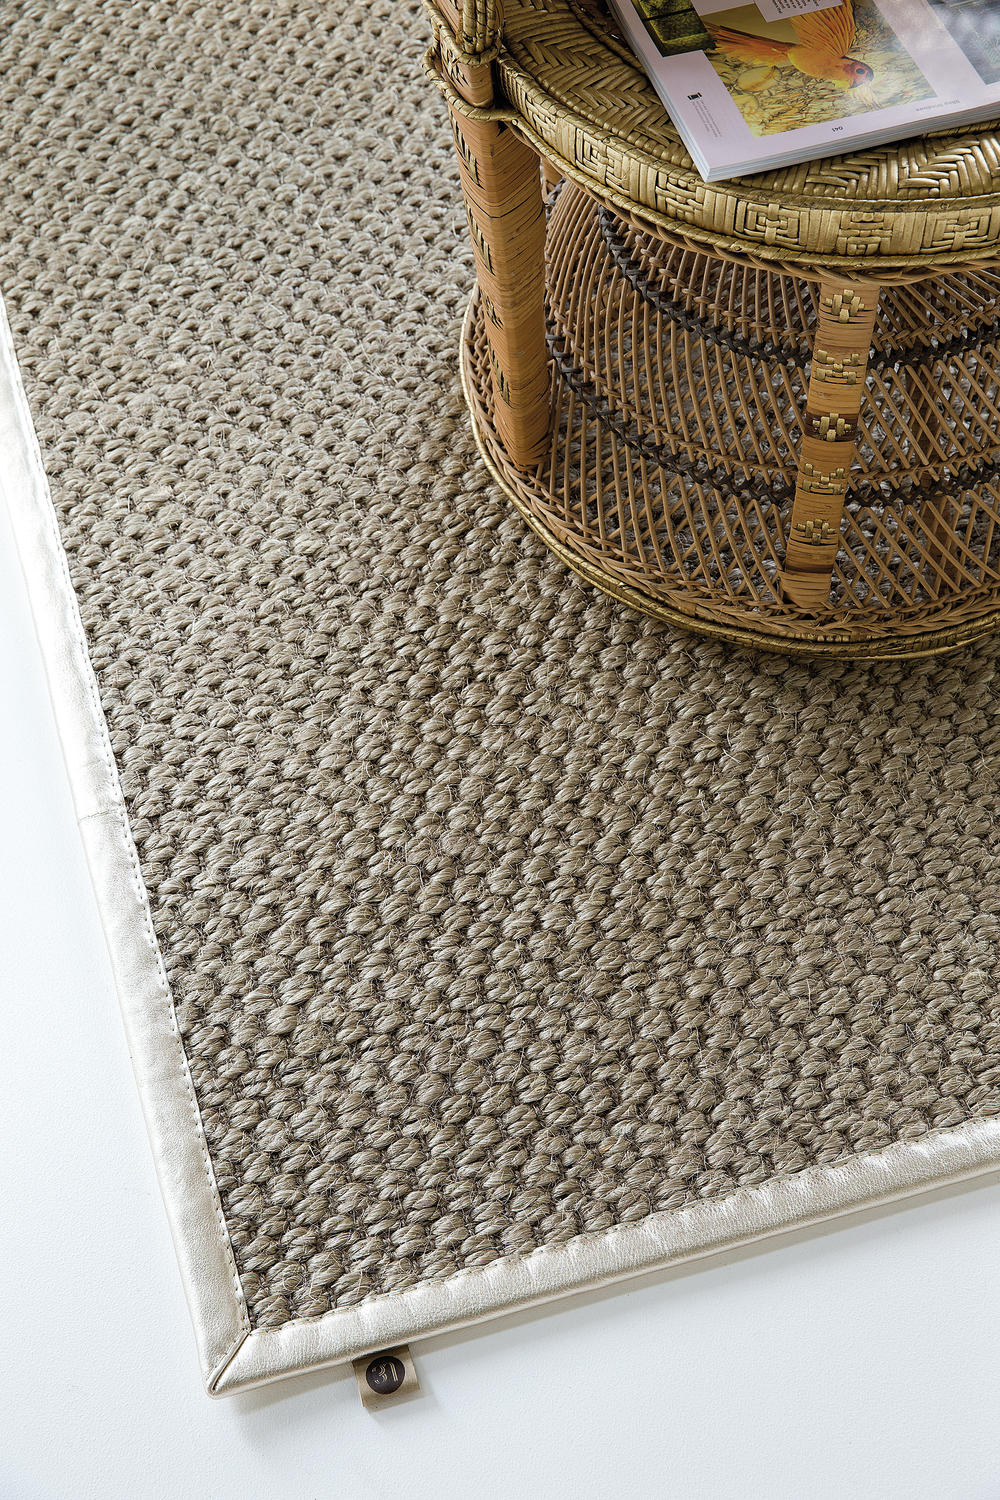 Limited Edition Zoulou sisal area rug